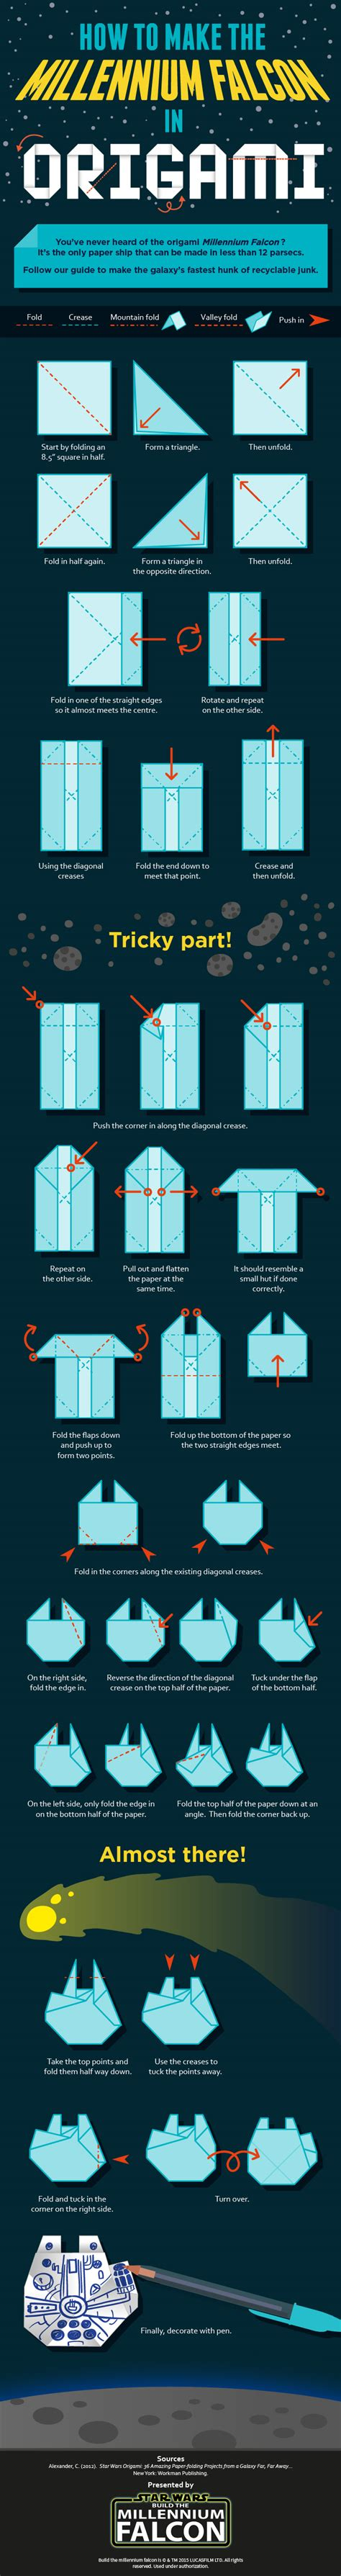 Origami Millennium Falcon - how to make the millennium falcon in origami infographic